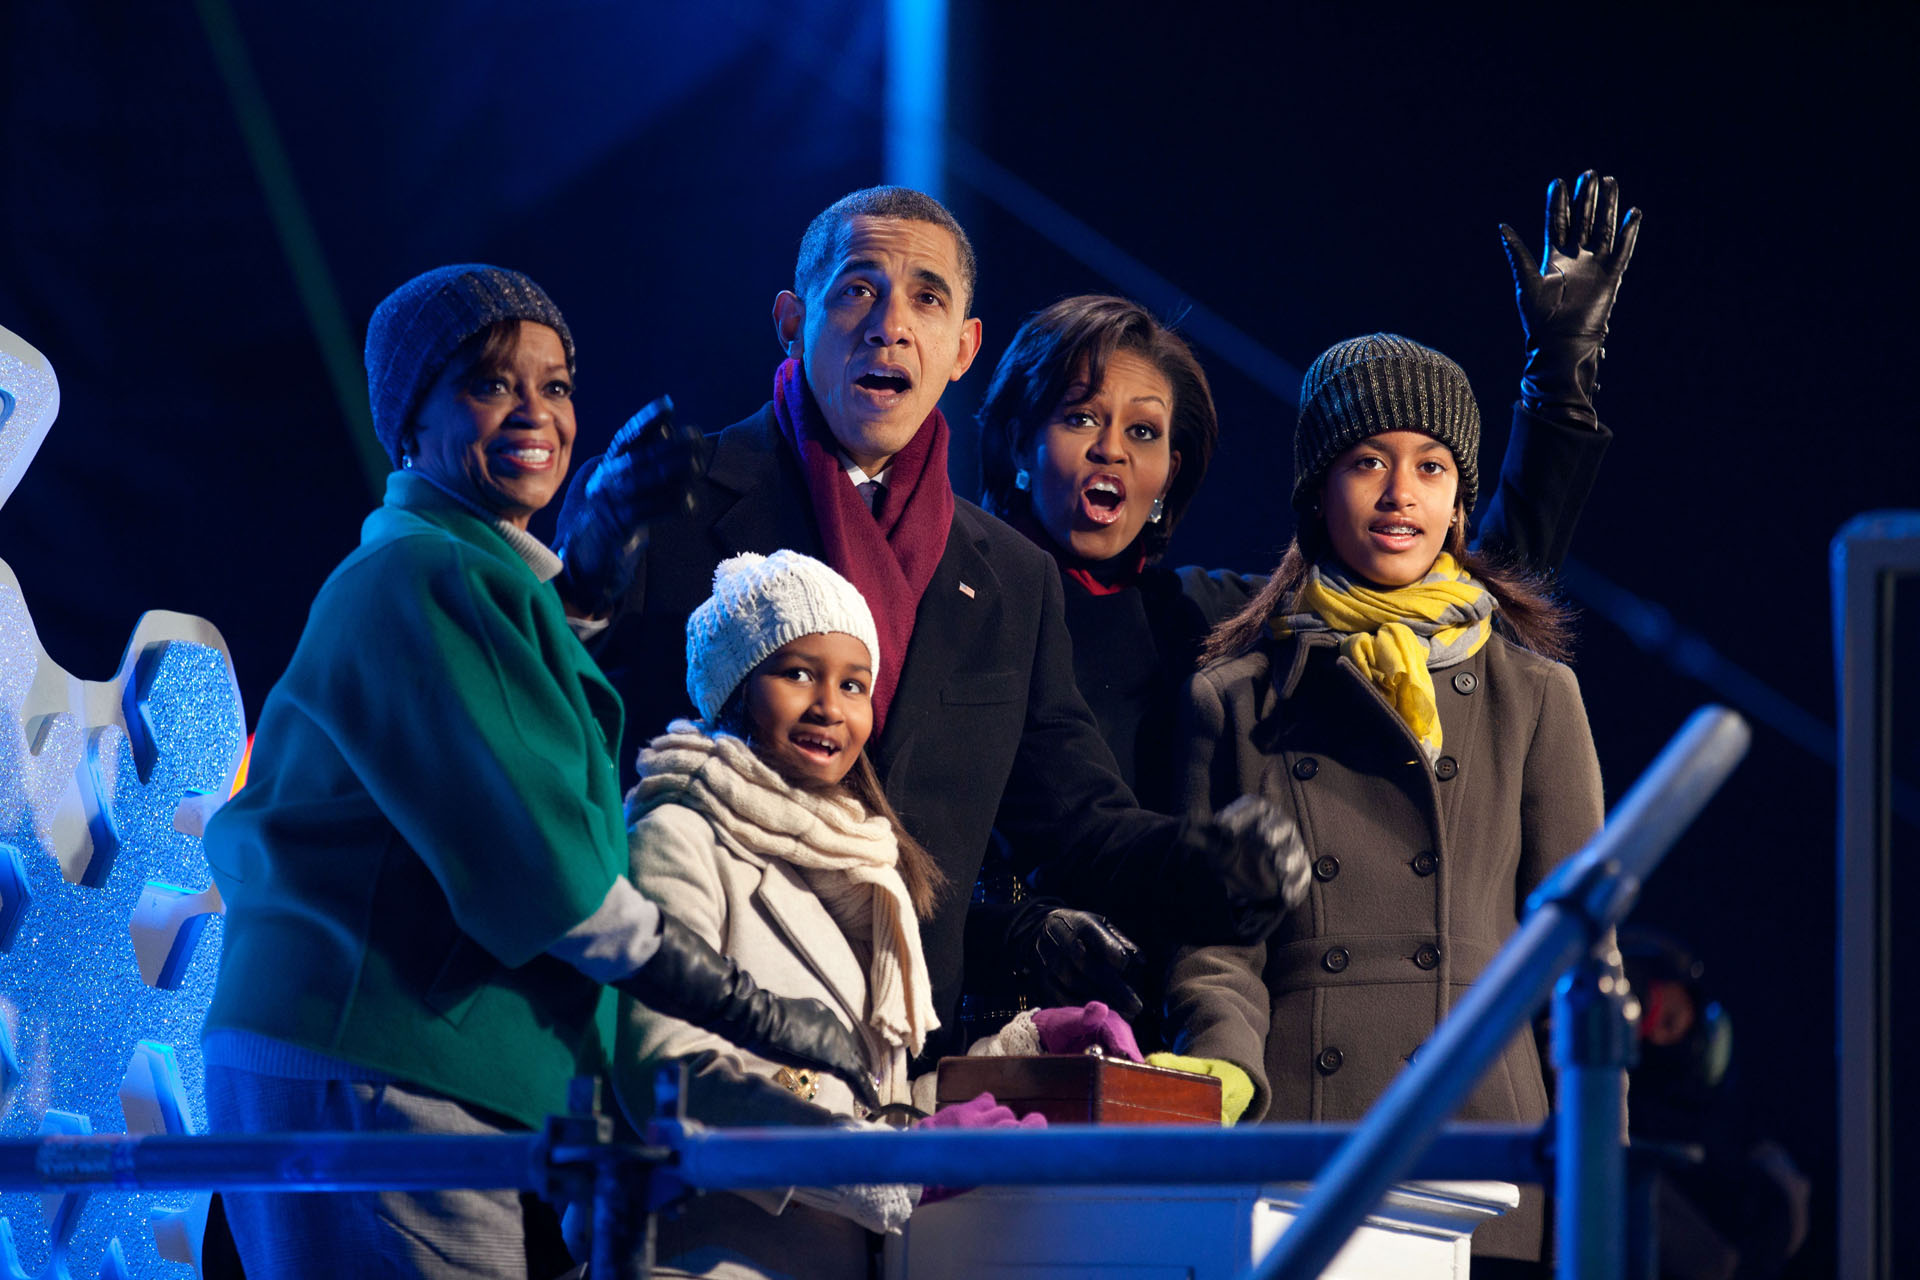 5, 4, 3, 2, 1… The Obama Family Lights The National Christmas Tree ...